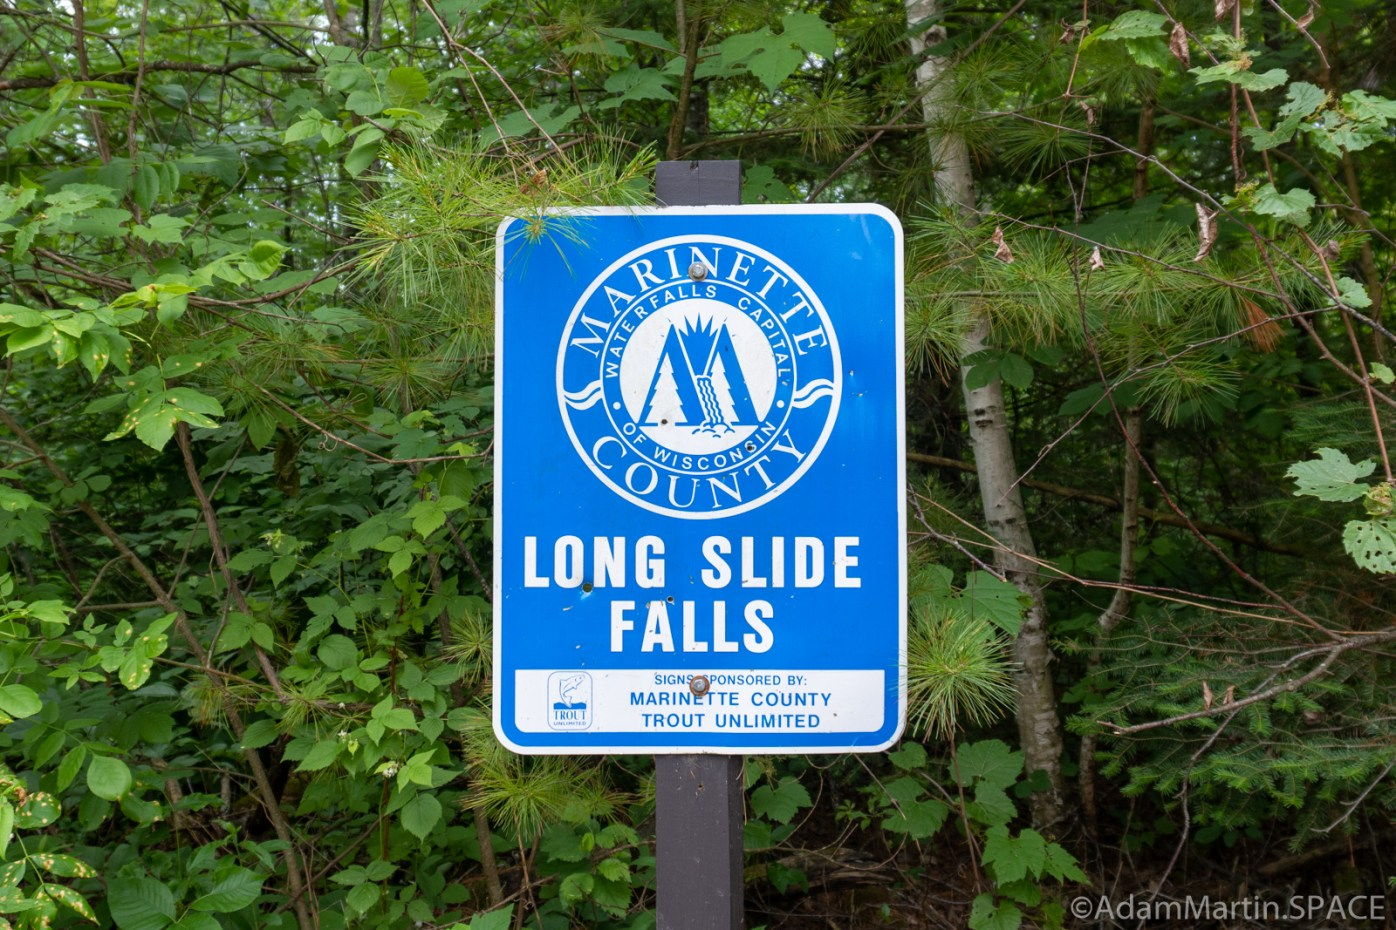 Long Slide Falls - Park sign